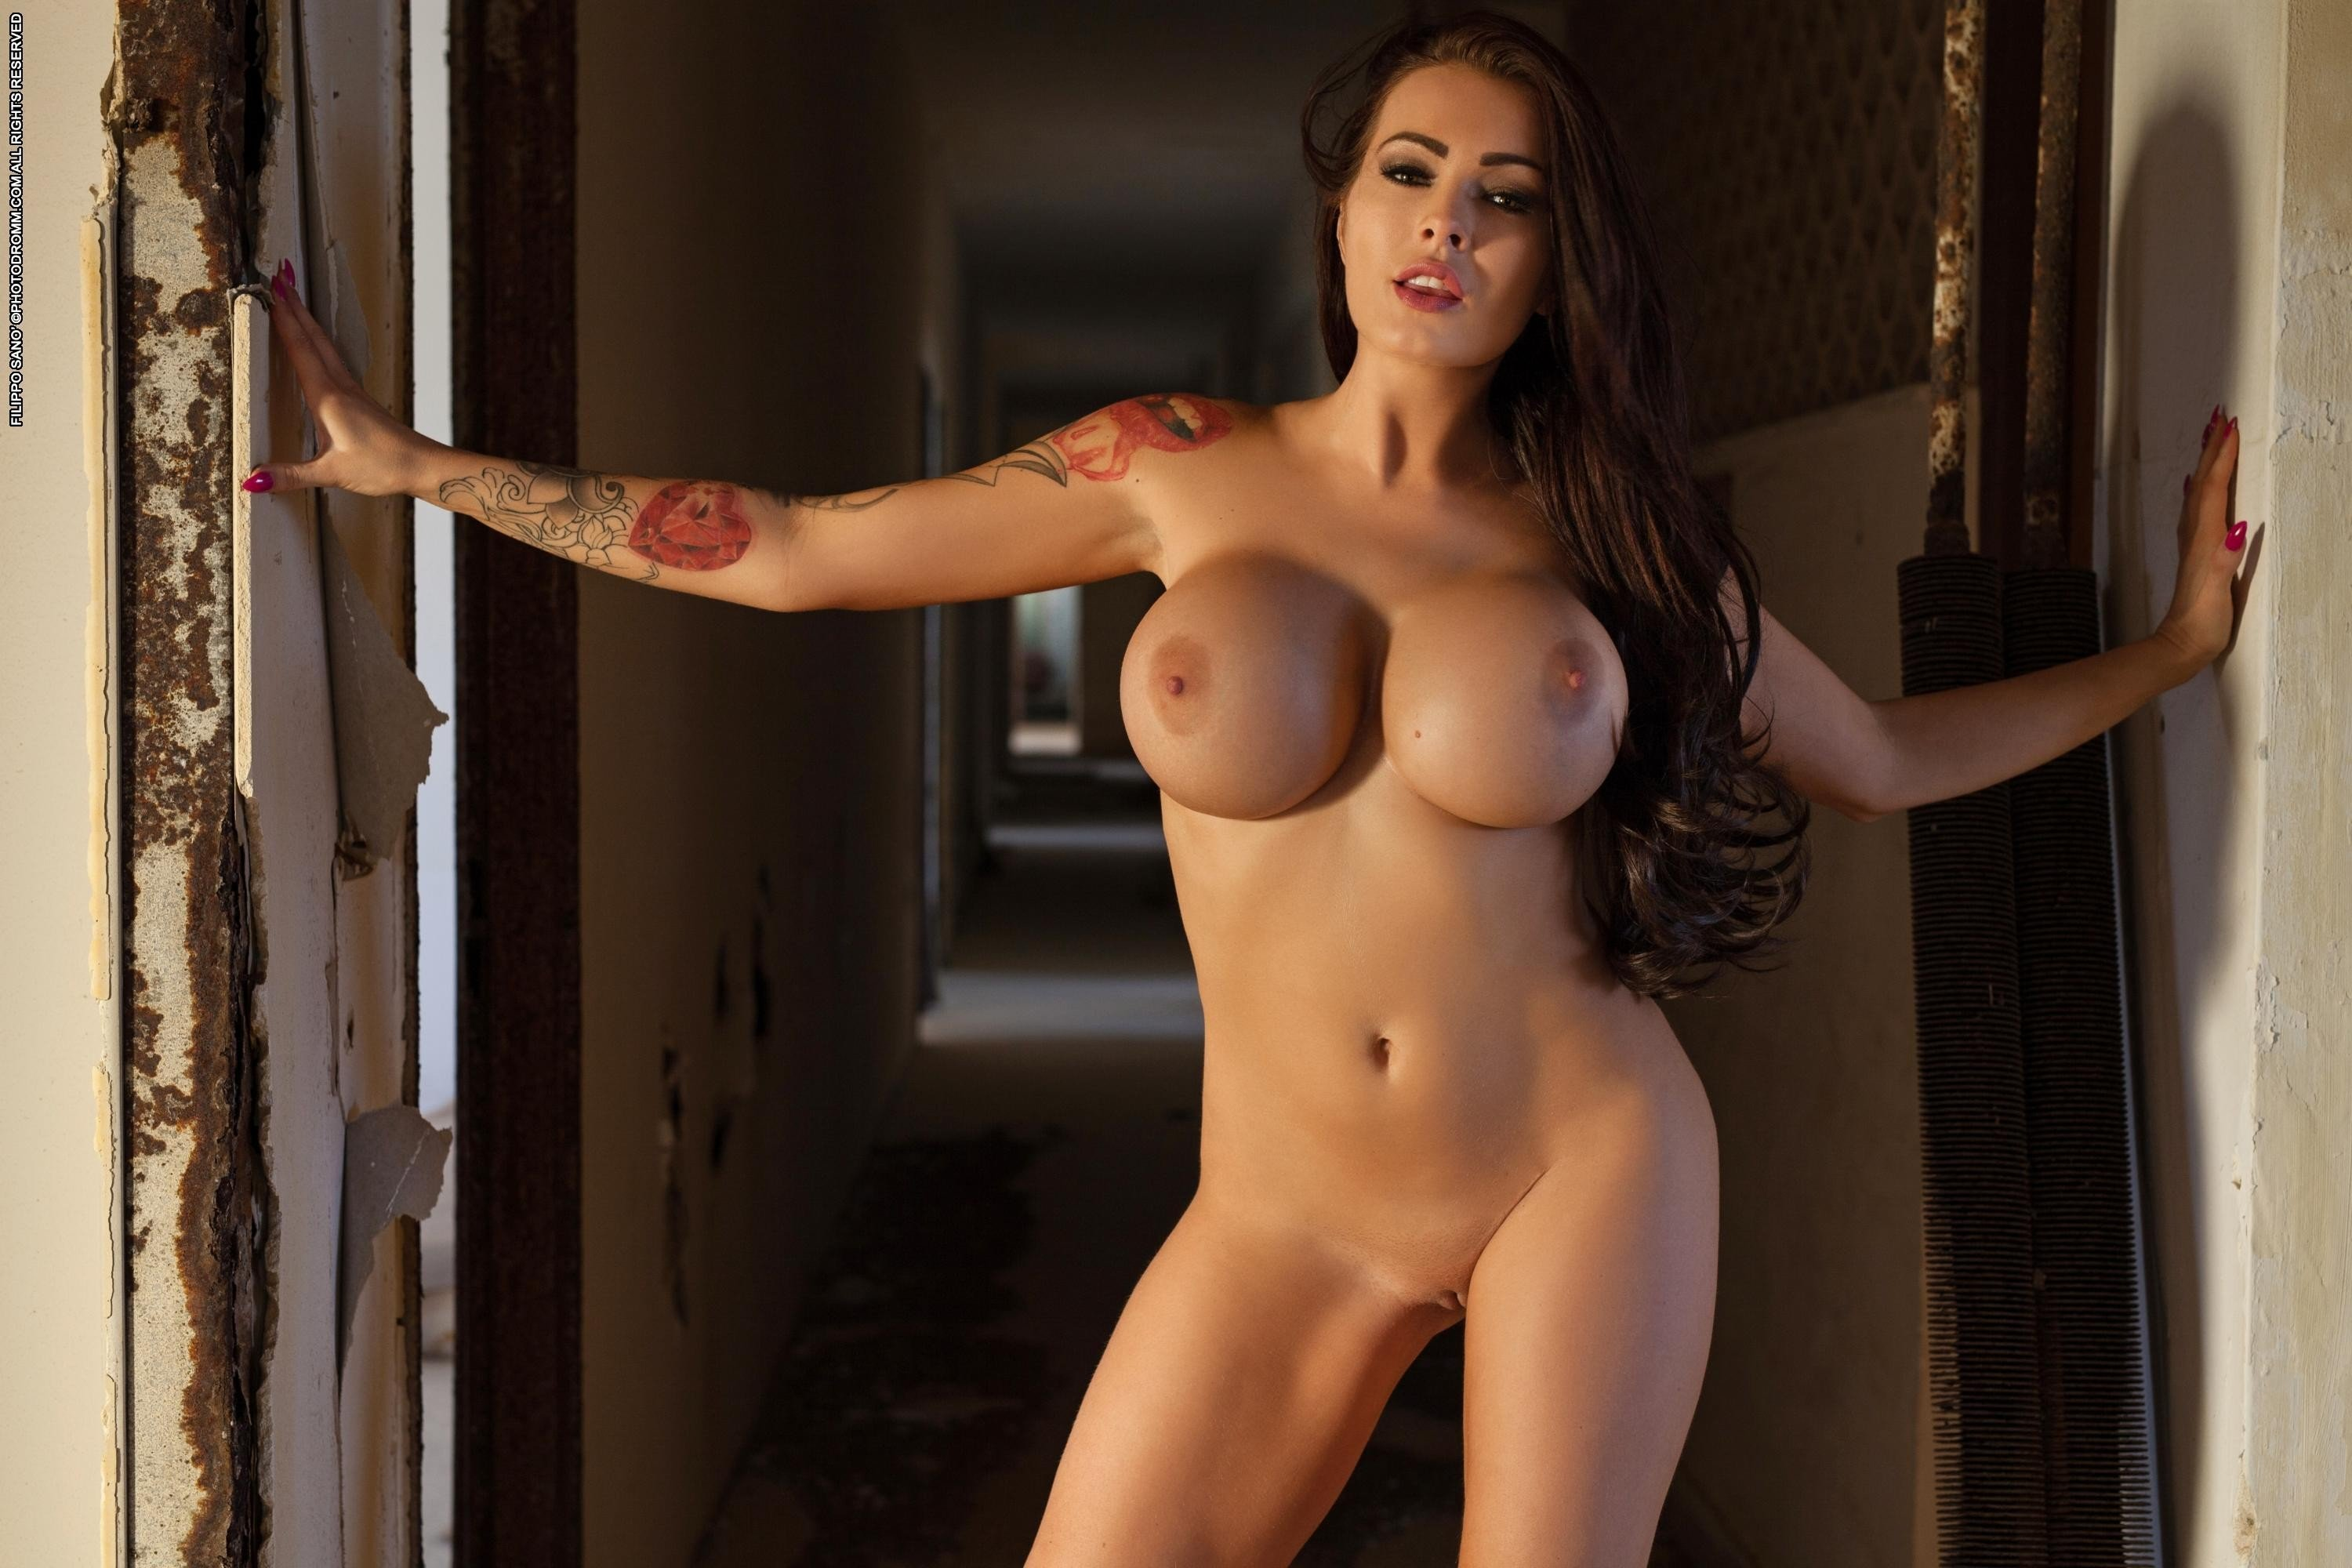 Best celebrity breasts of all time whos the big winner